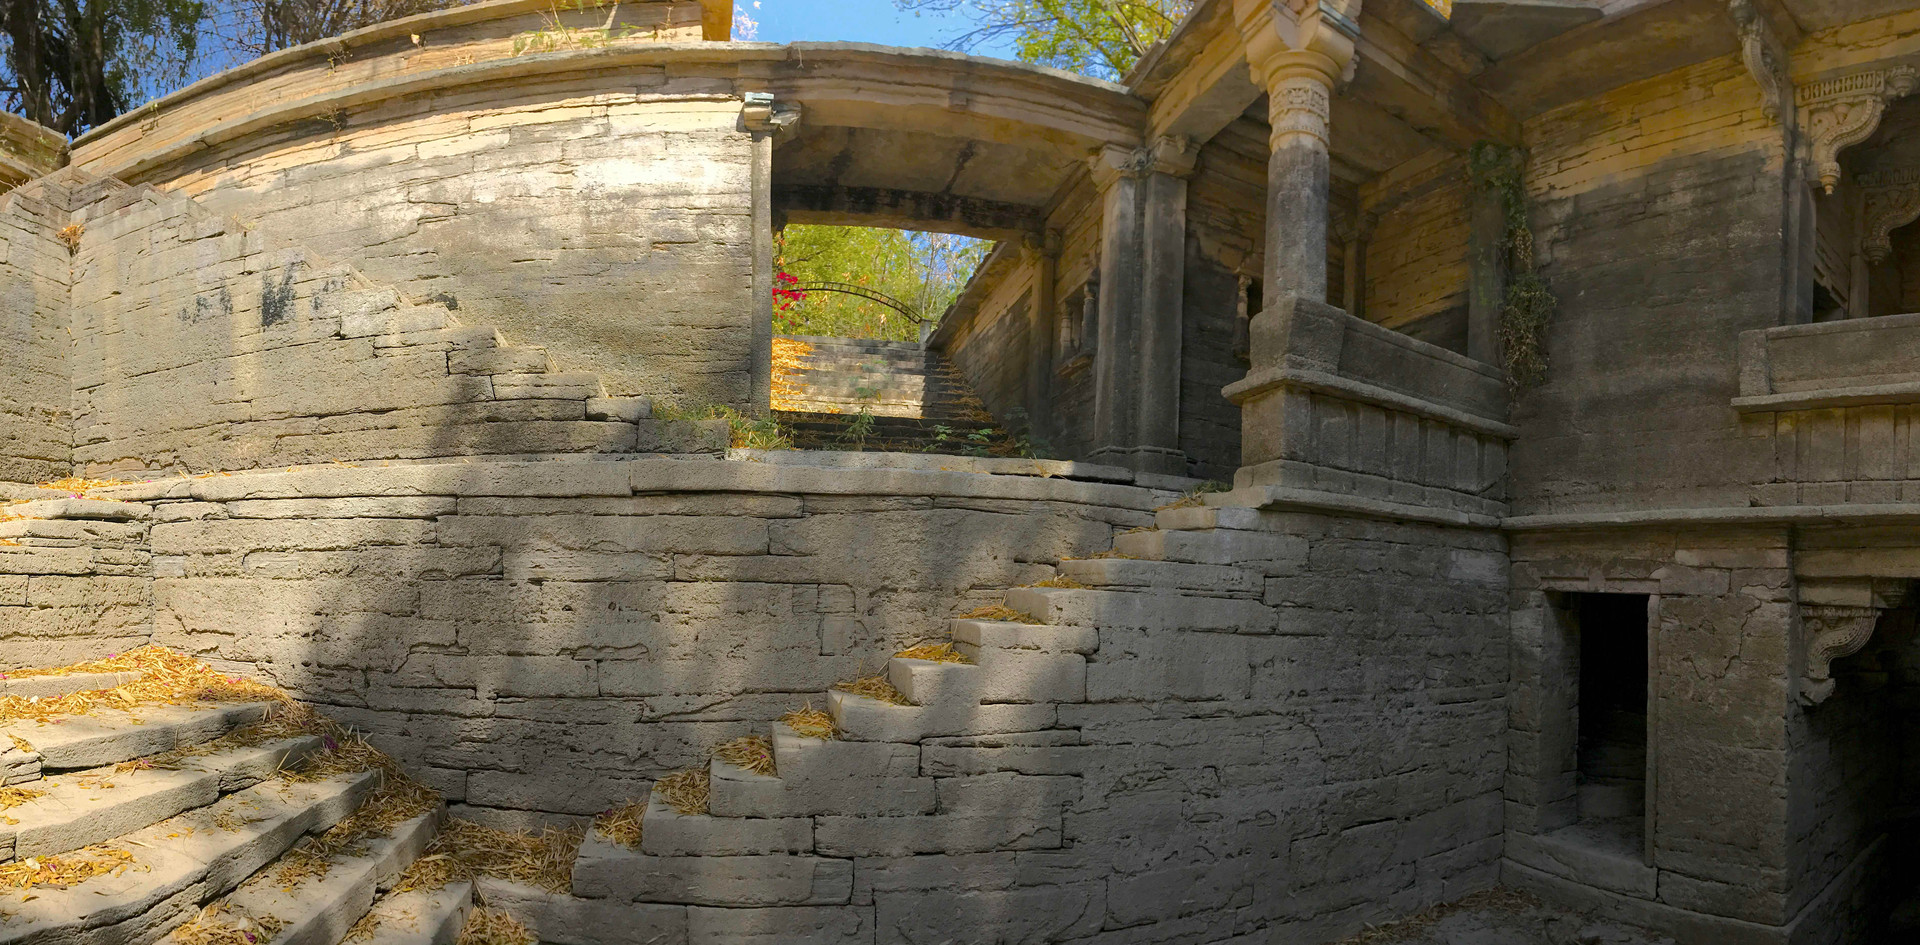 PANORAMA-WATER-STEP-WELL-ARCHITECTURE_.j